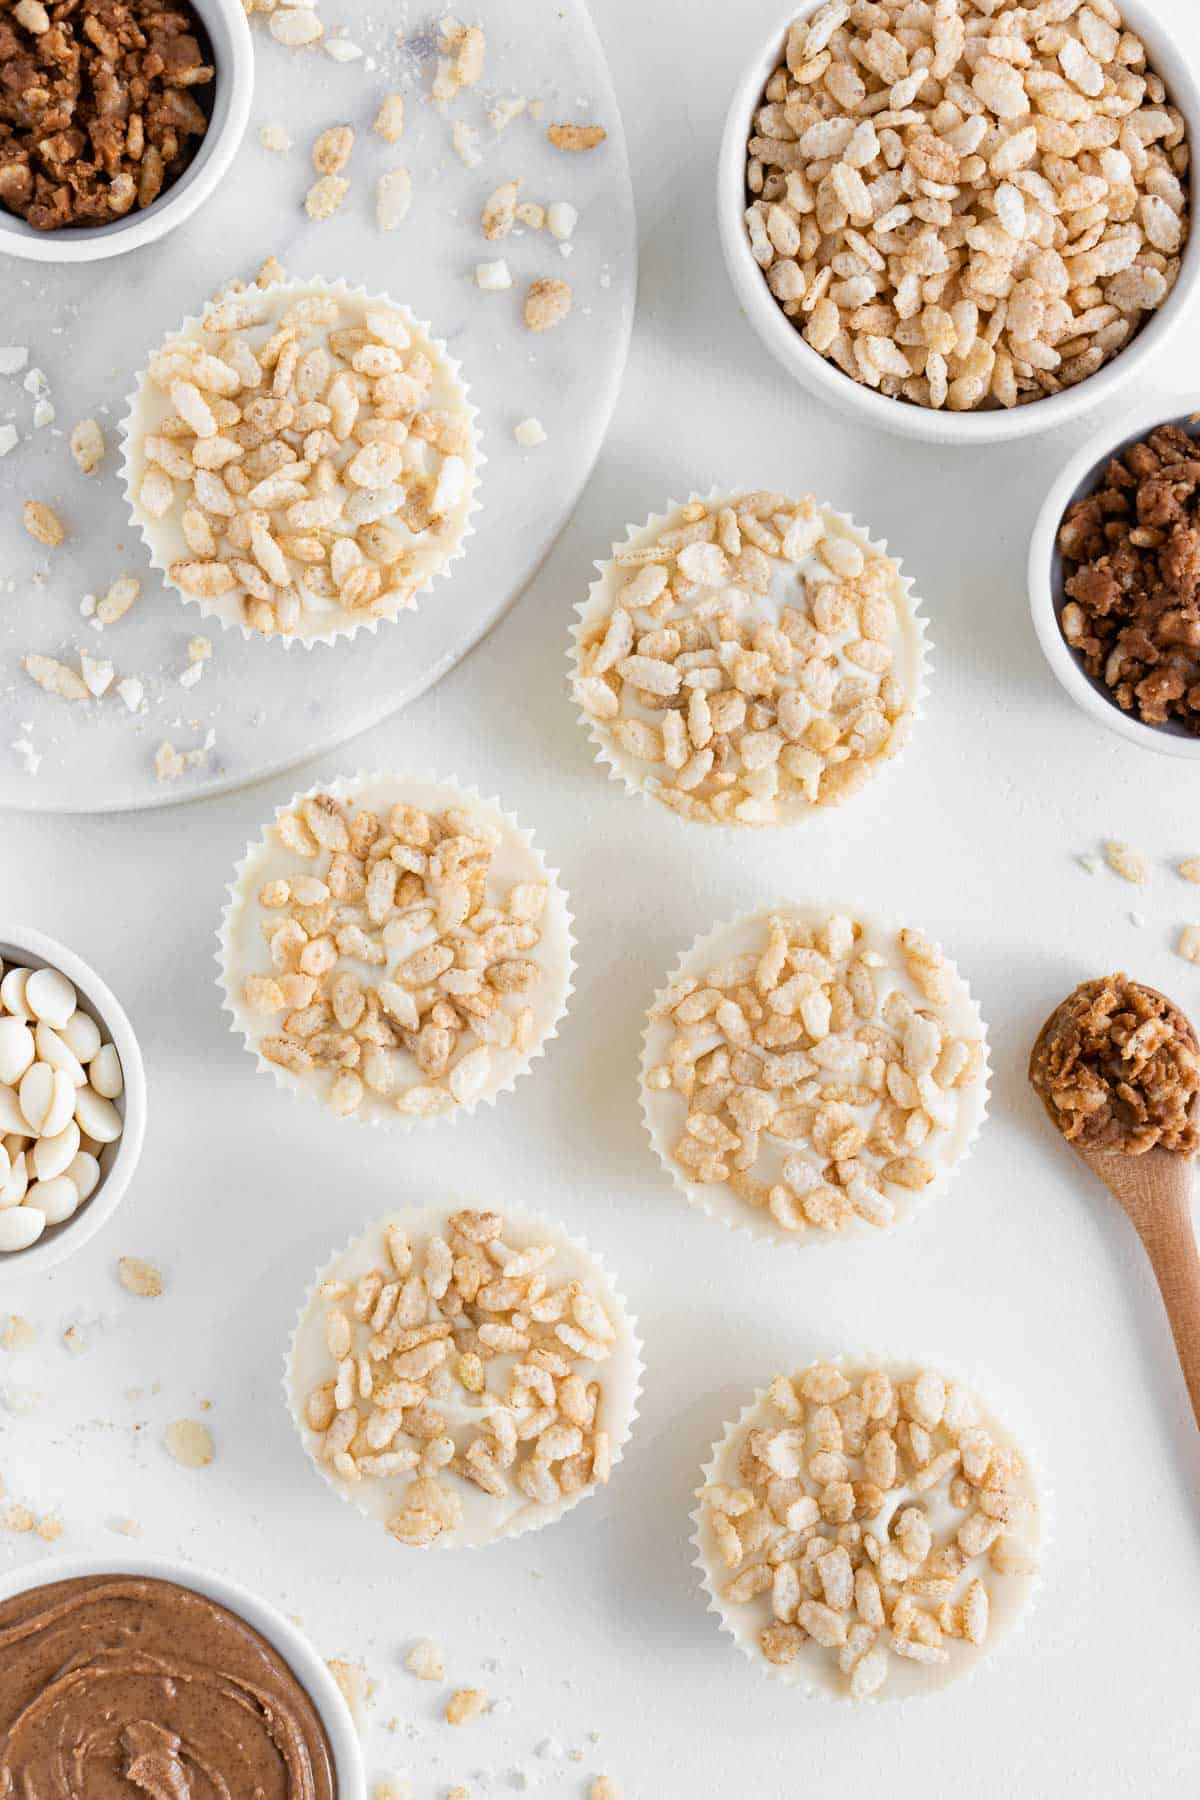 white chocolate almond butter cups surrounded by brown rice crisps cereal, nut butter, chocolate chips, and a wooden spoon